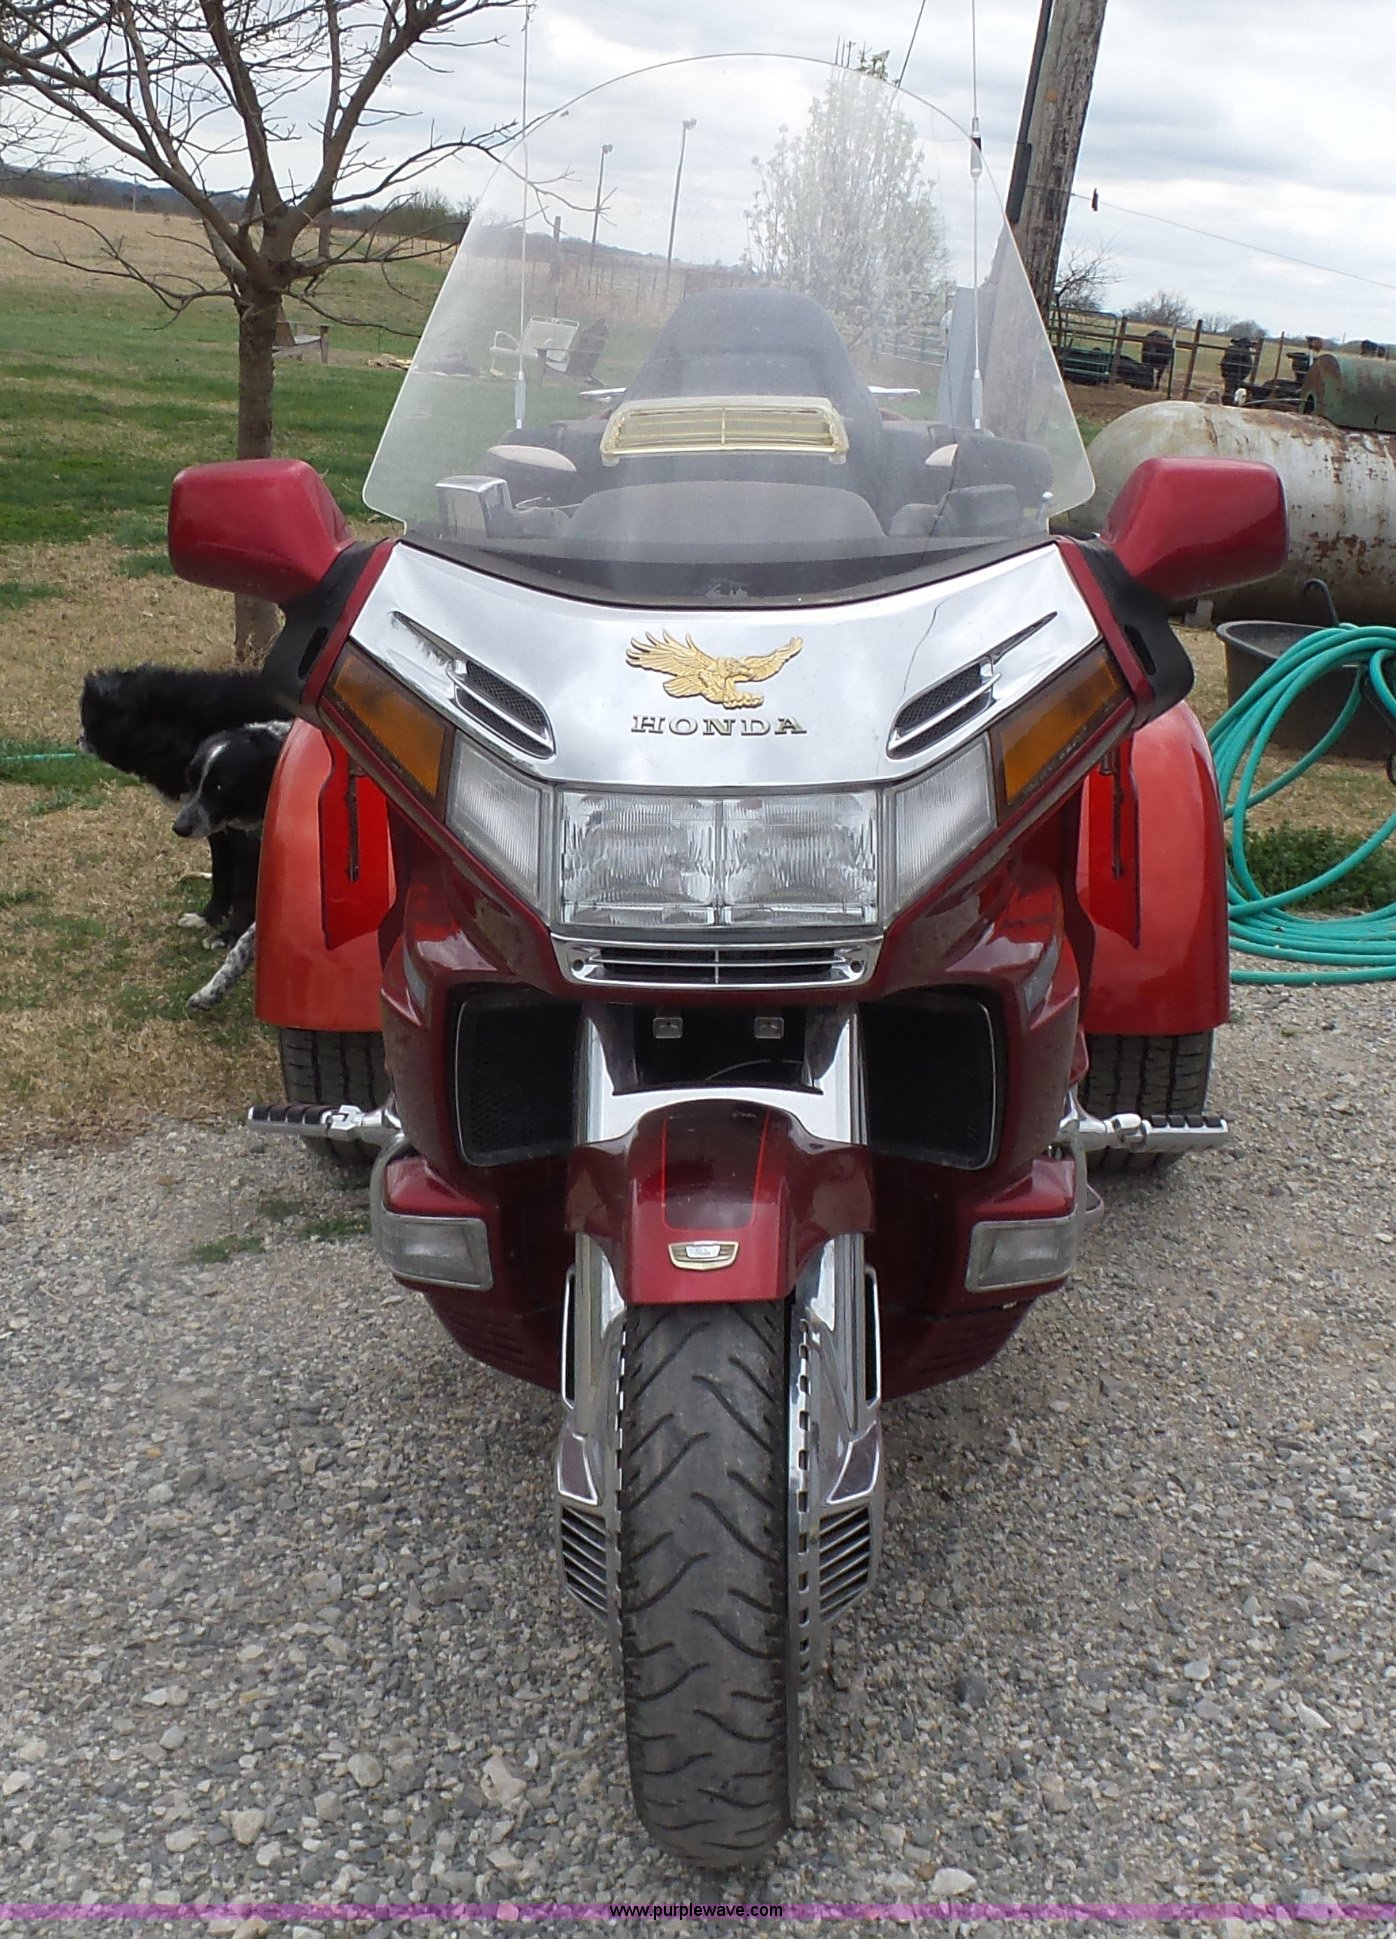 ... 1997 Honda Gold Wing GL1500SE trike motorcycle Full size in new window  ...